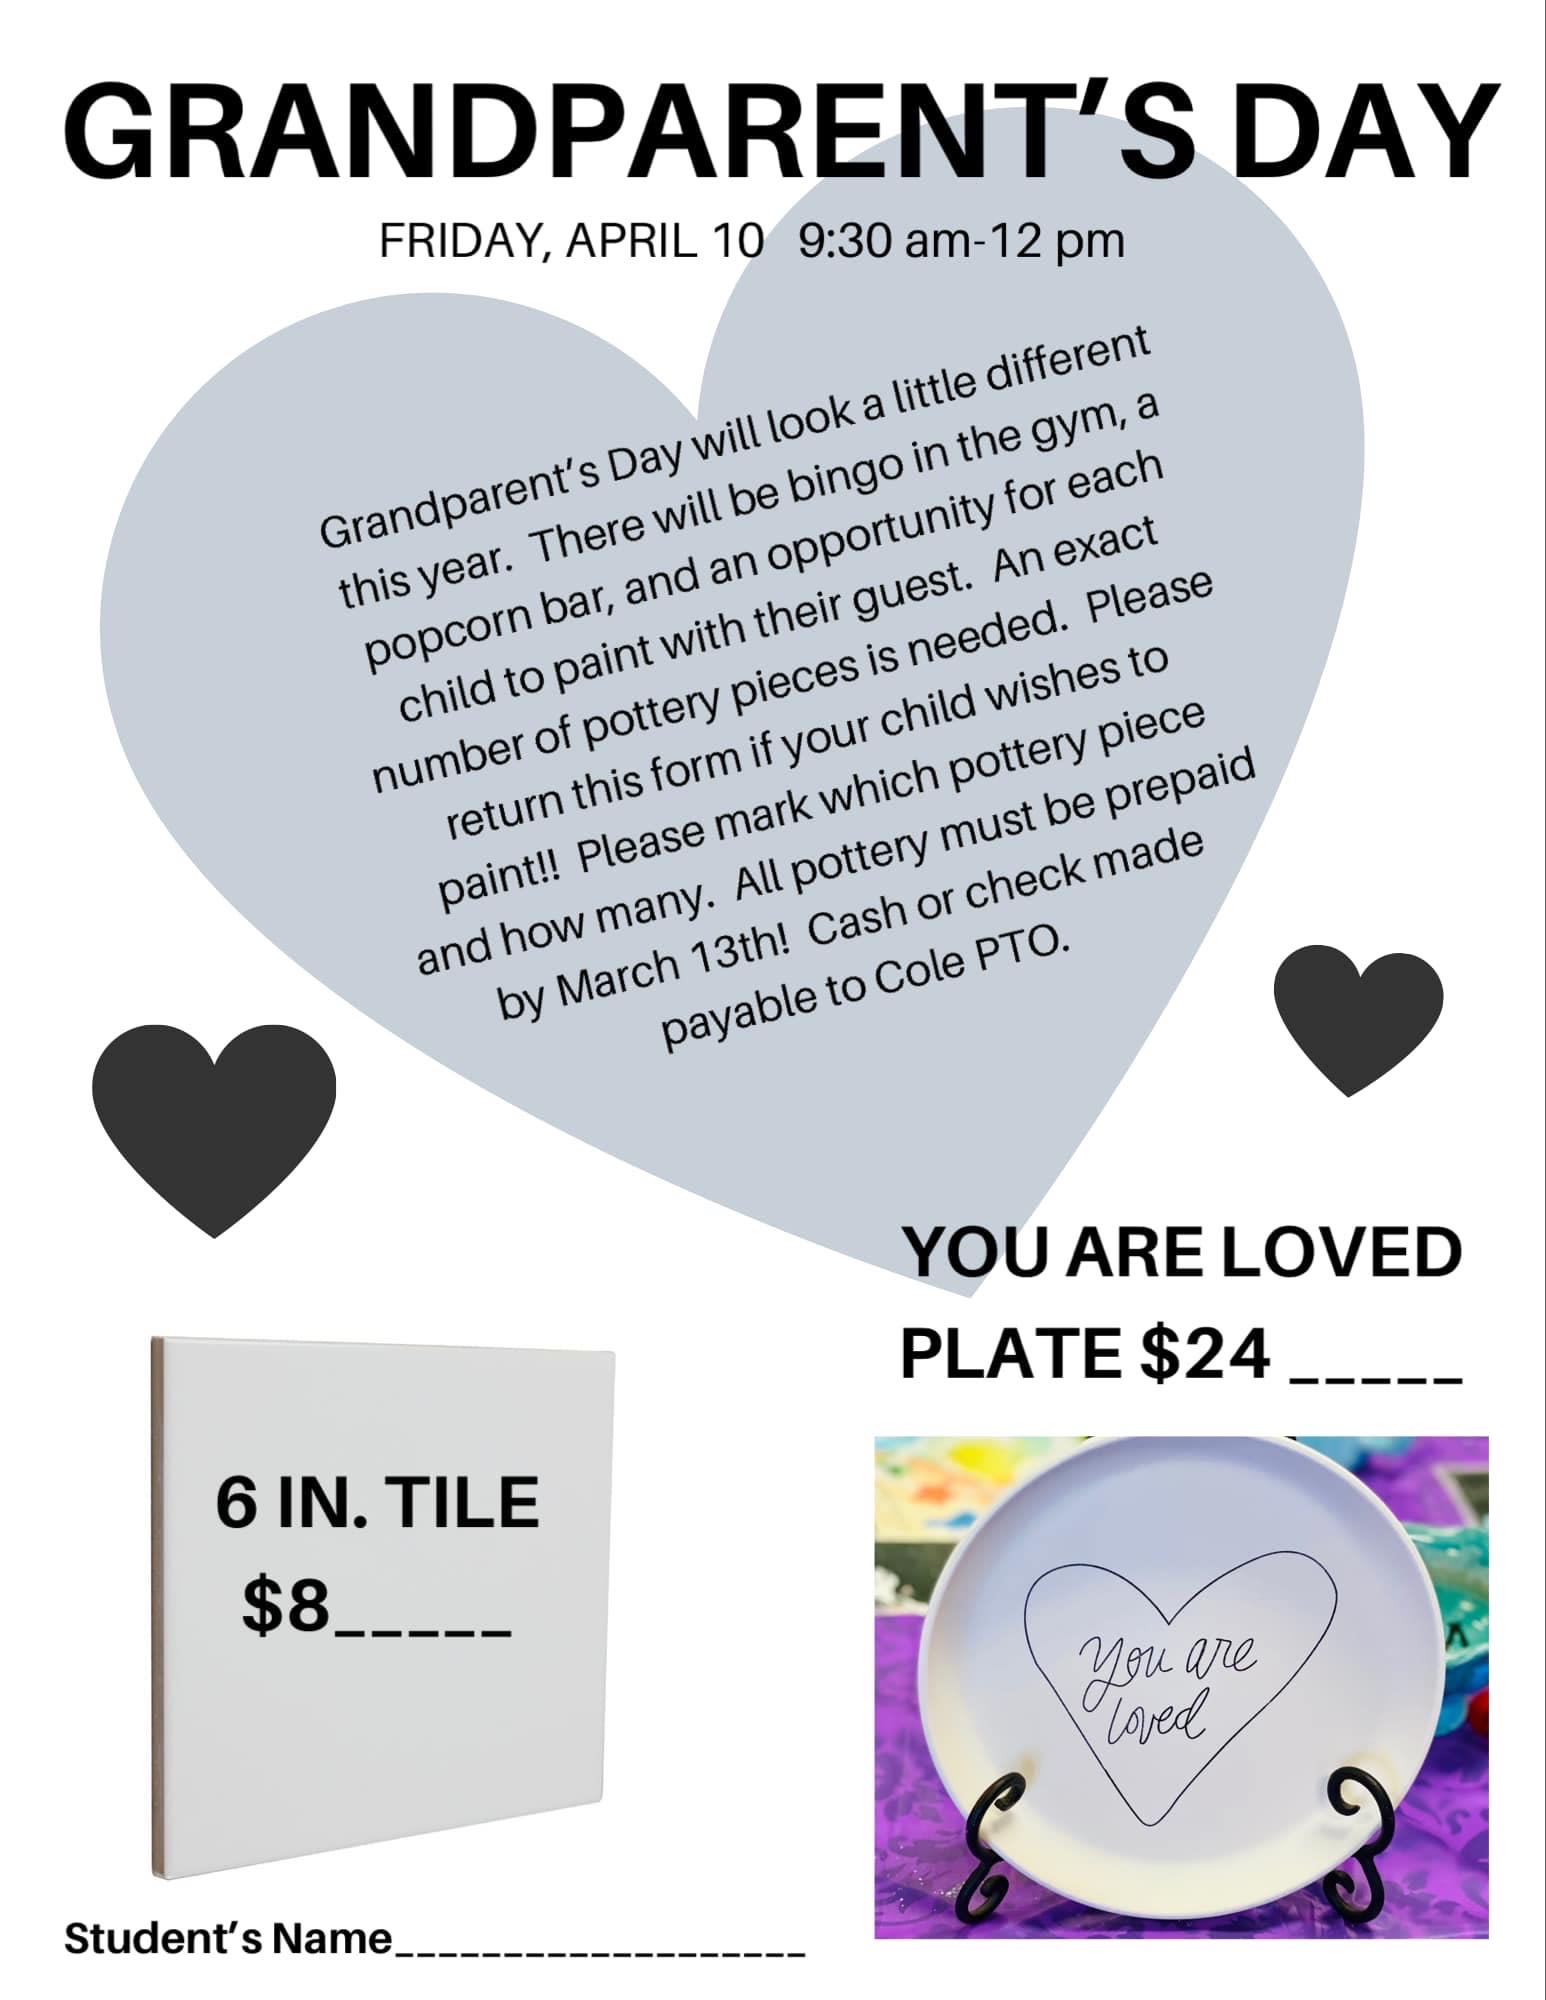 Granparent's Day Friday, April 10 9:30 am - 12 pm; Grandparent's Day will look different this year. There will be bingo in the gym, a popcorn bar, and an opportunity for each chid to paint with their guest. An exact number of pottery pieces is needed. Please return this form if your child wishes to paint! Please mark which pottery piece and how many. All pottery must be prepaid by March 13. Cash or check made payable to Cole PTO.   Choice one: 6 inch tile: $8; You are Loved Plate: $24